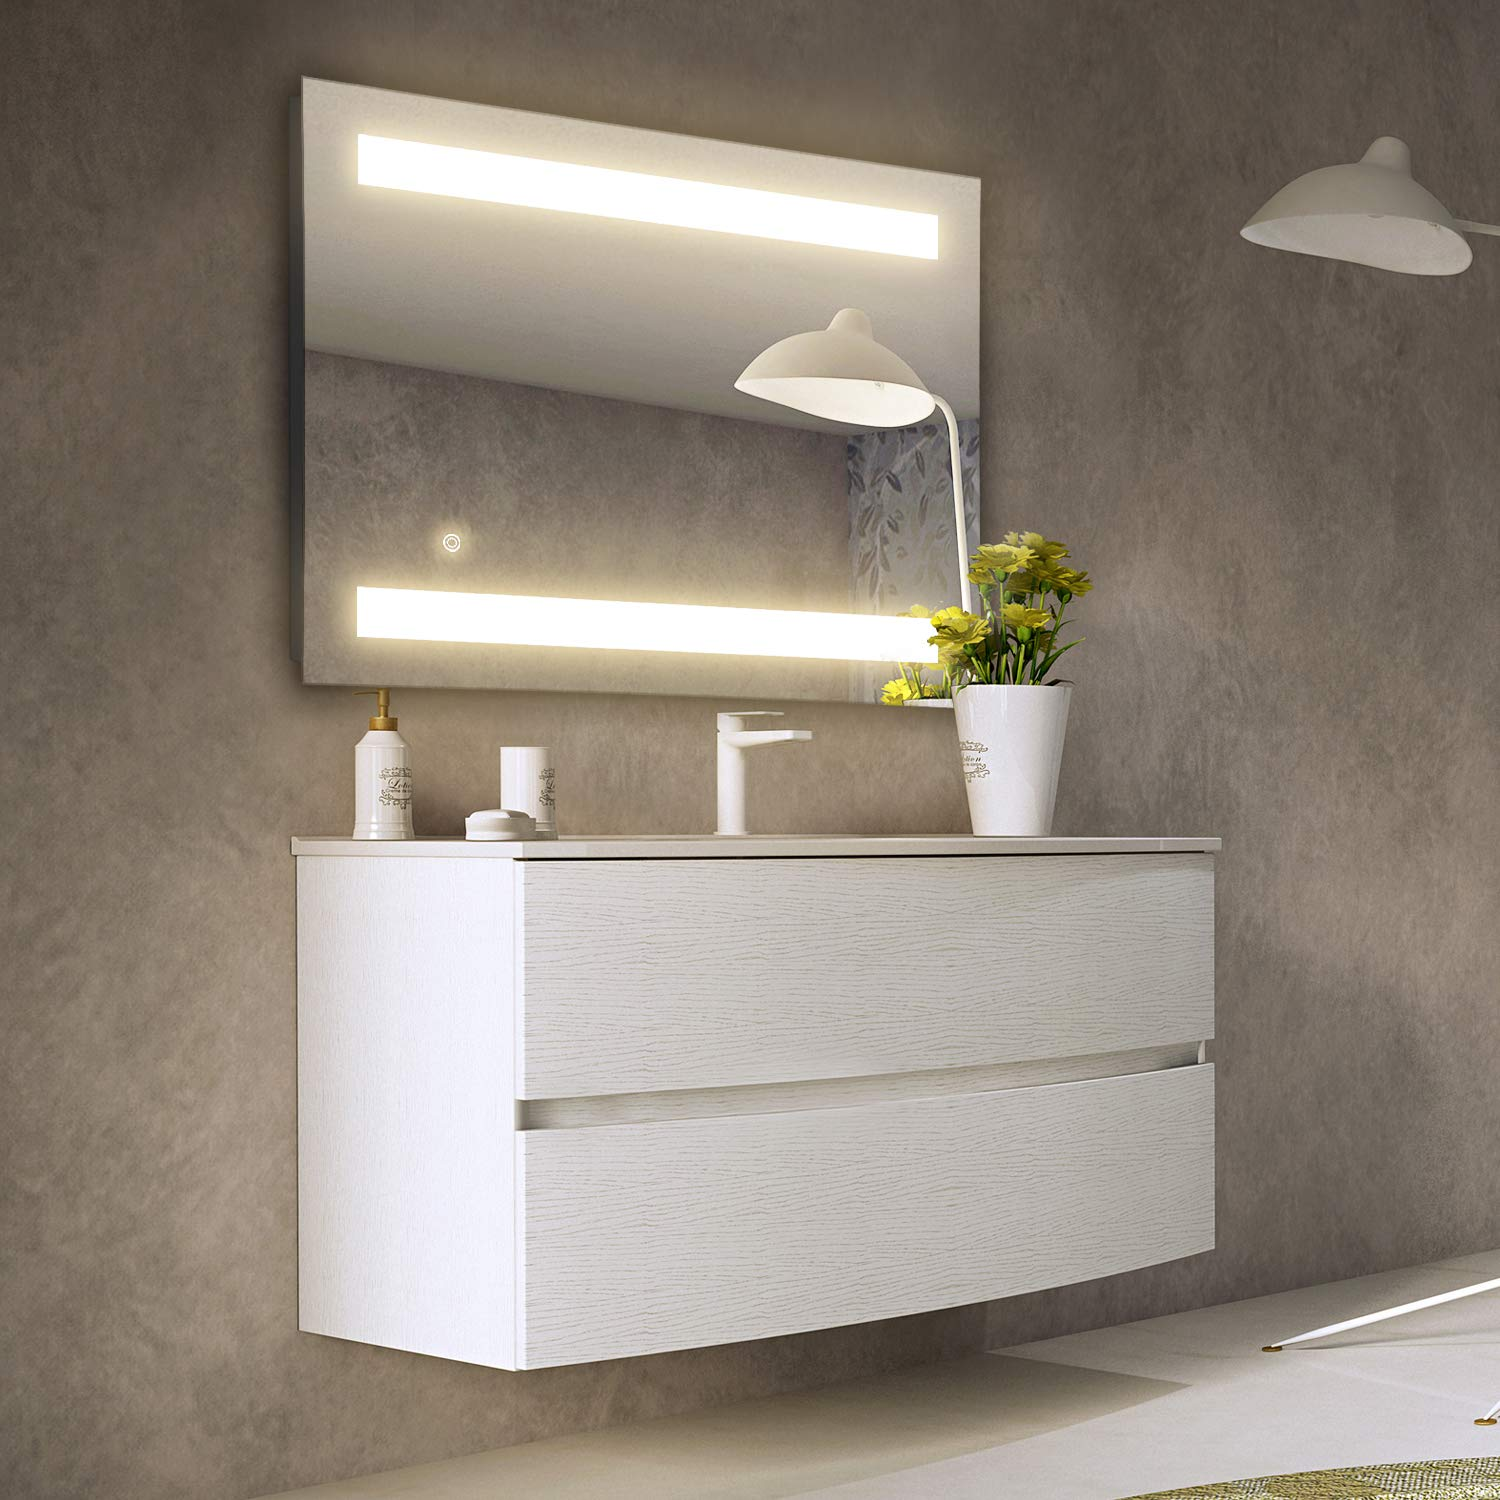 GETINLIGHT LED Wall Mounted Lighted Vanity Mirror, 3000K Soft White , ETL Listed, Damp Location Rated, IN-0405-2-24-30-3K